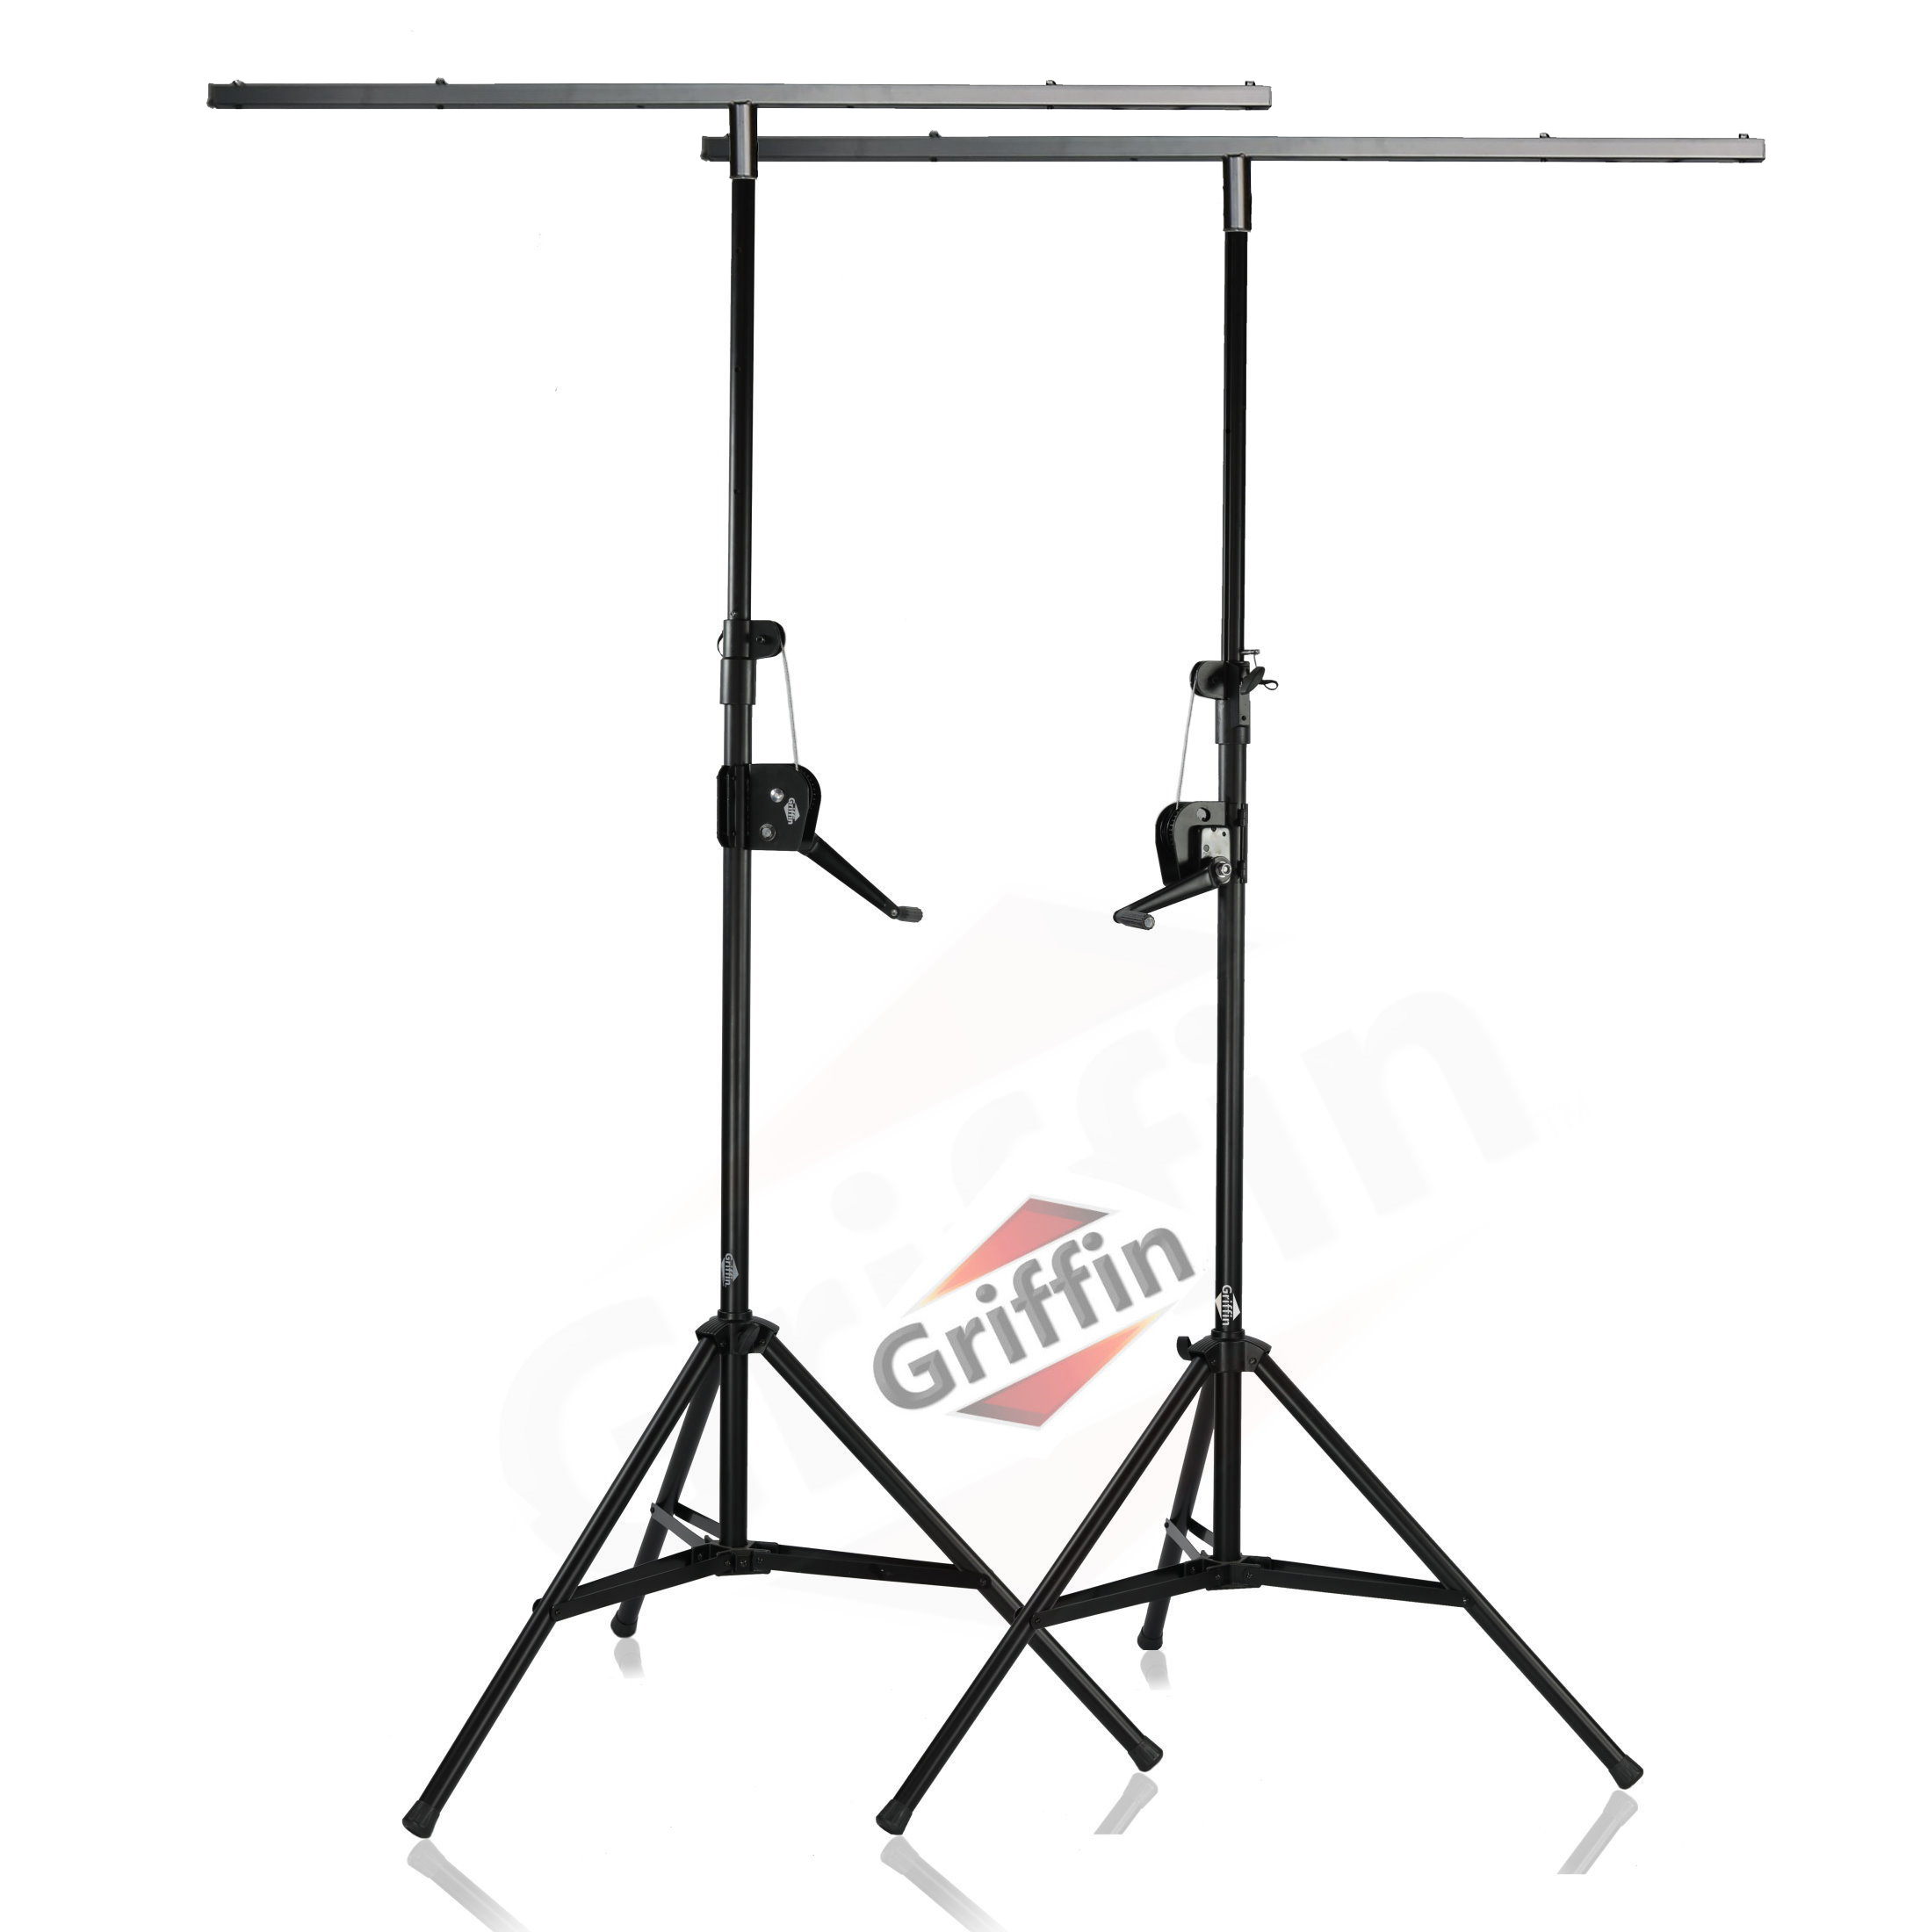 pair 2 crank up truss light stage speaker stand pa trussing lighting pro audio ebay. Black Bedroom Furniture Sets. Home Design Ideas